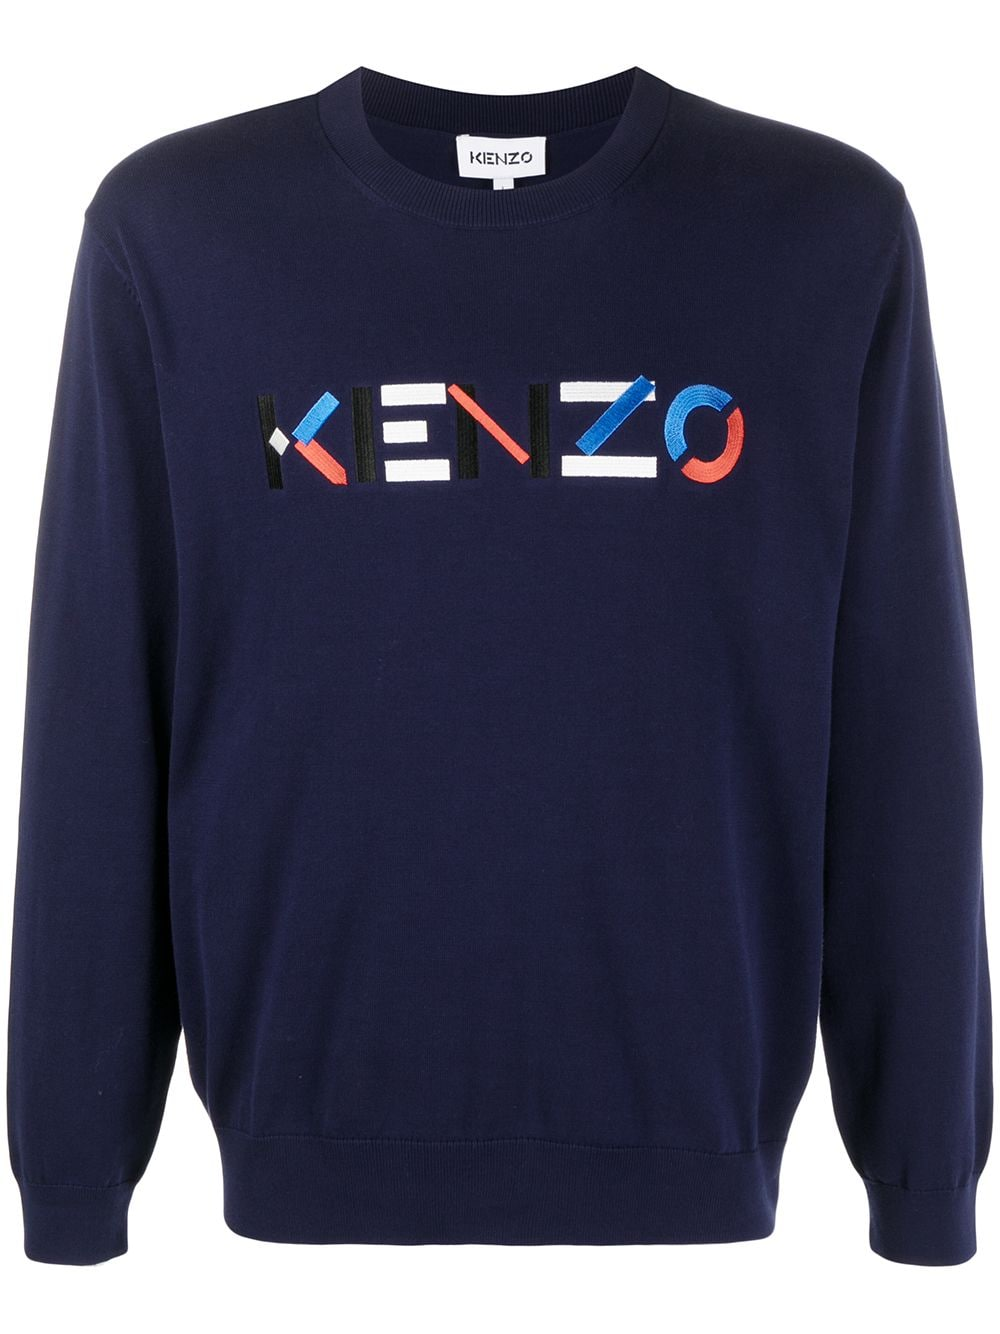 EMBROIDERED LOGO SWEATER KENZO | Sweaters | FB55PU5413LA76